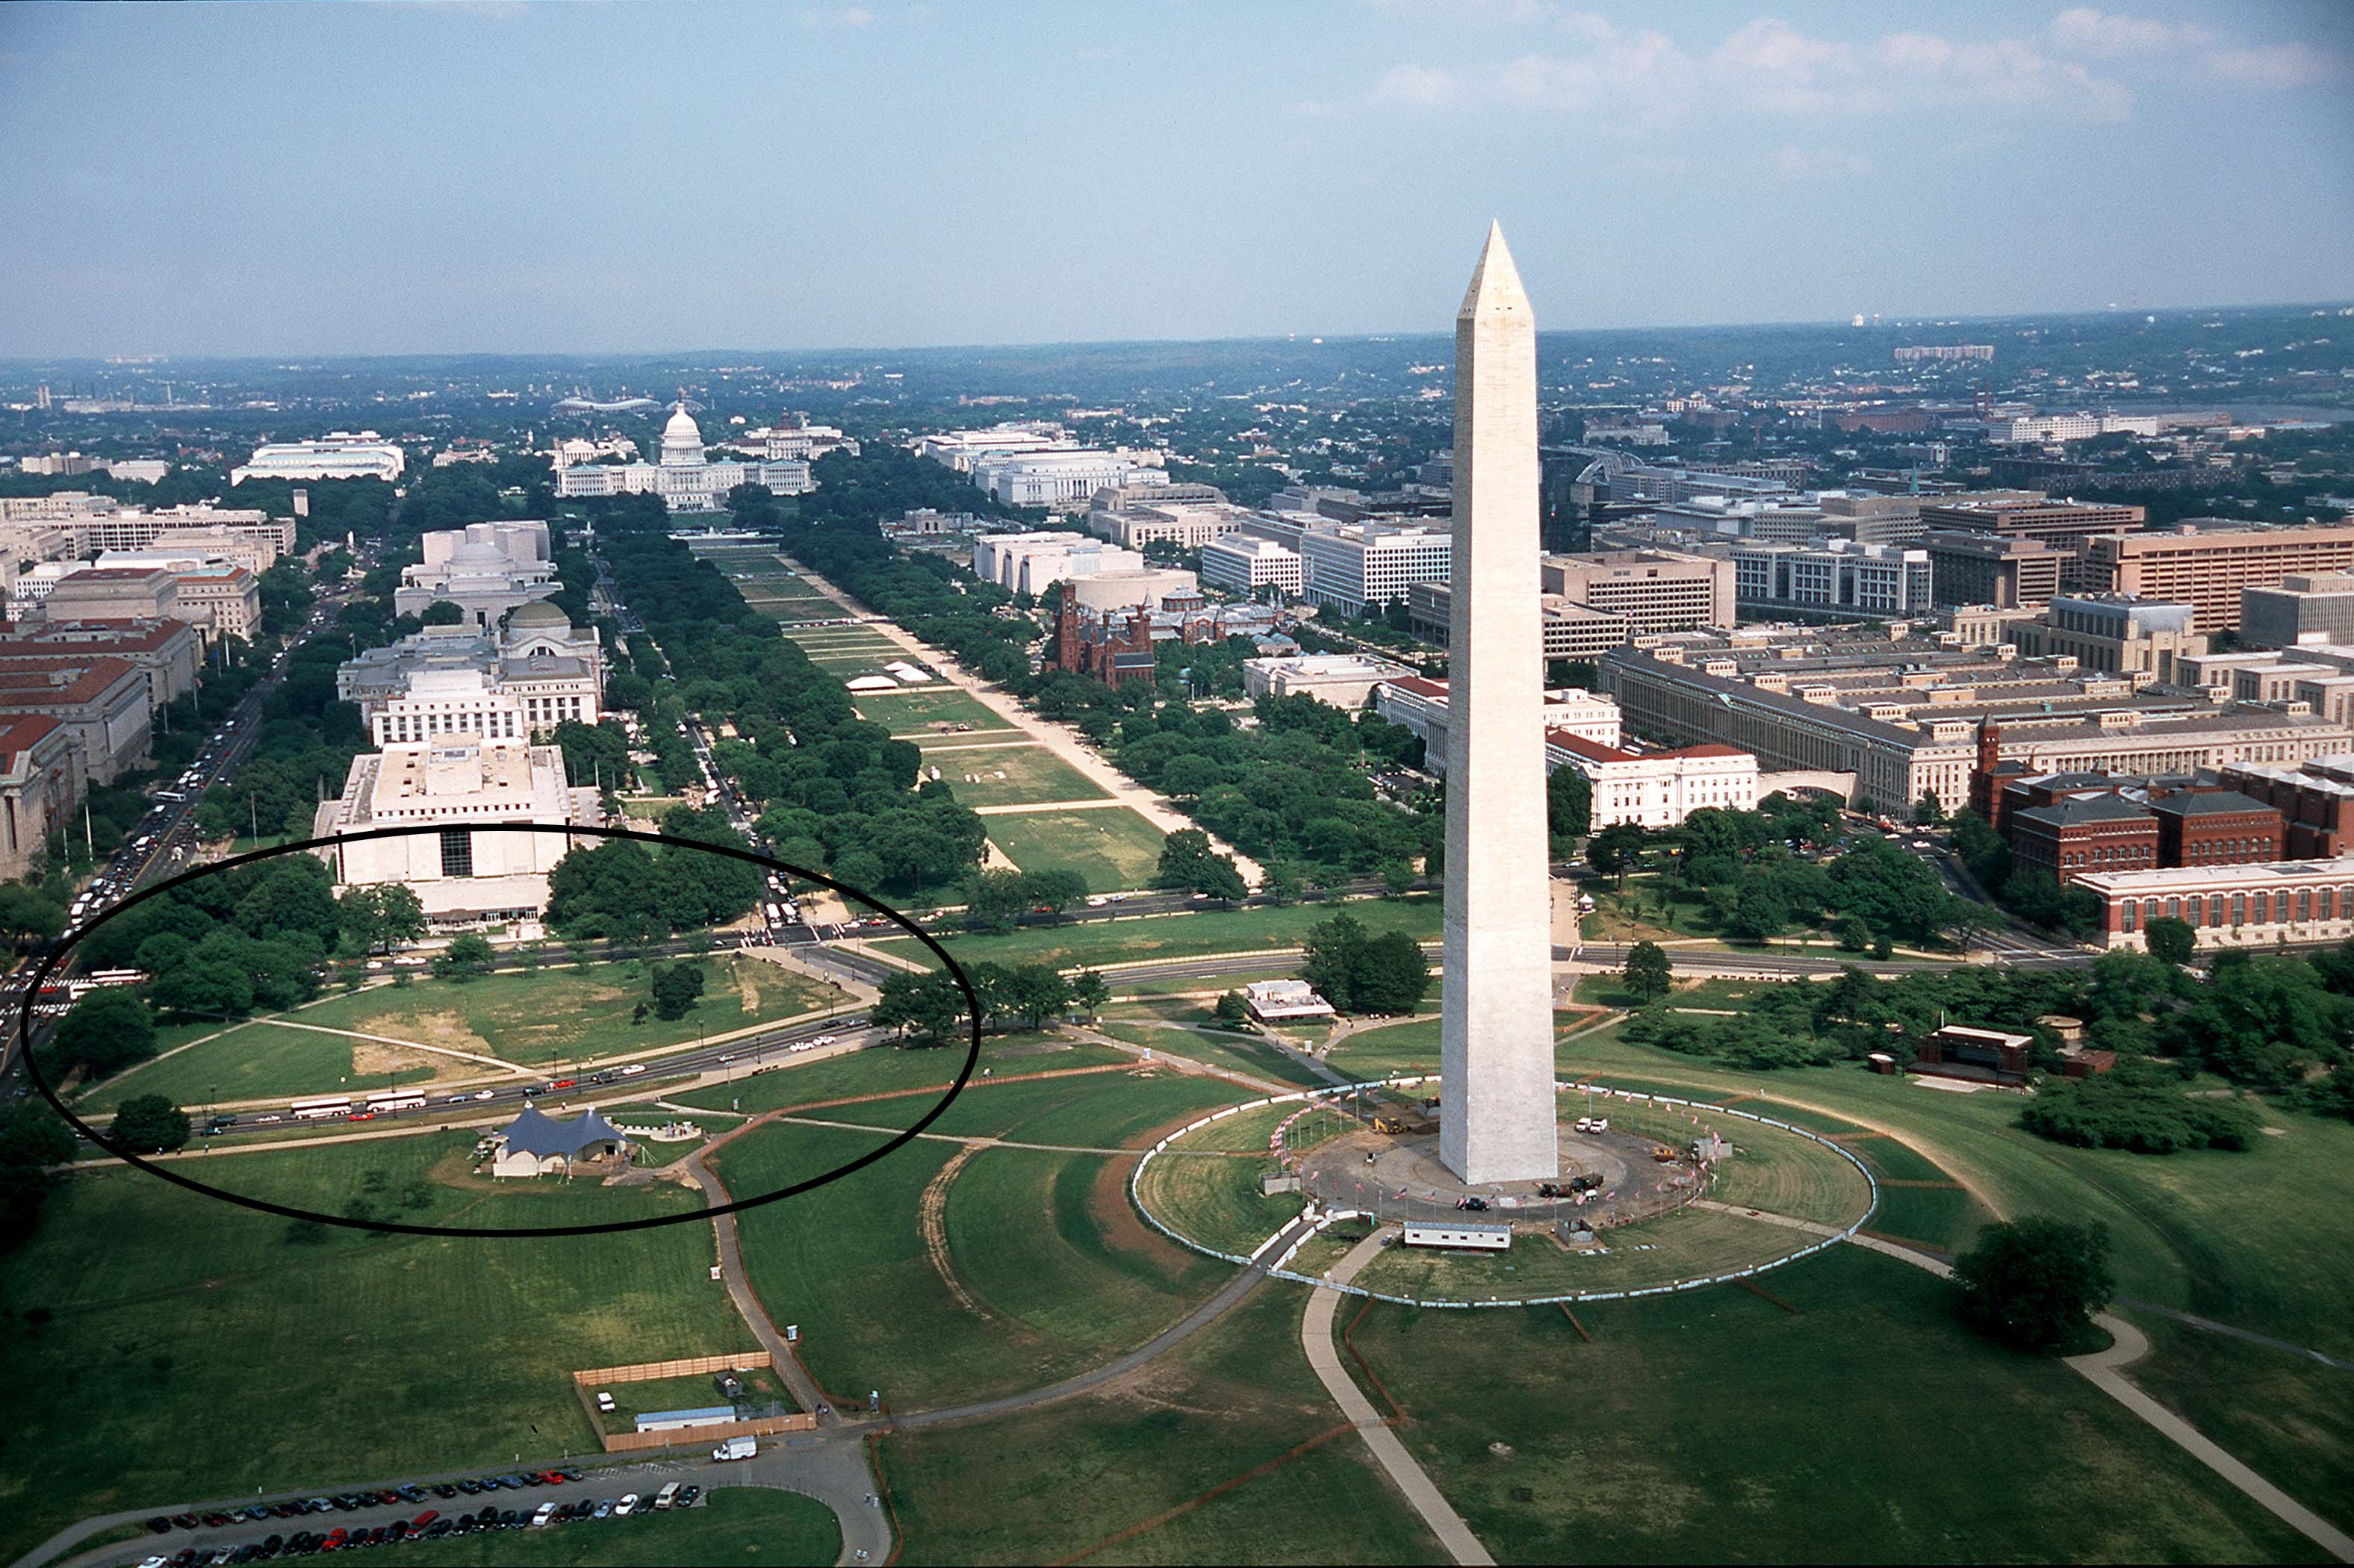 Image of the site where NMAAHC was going to be built adjacent to the Washington Monument